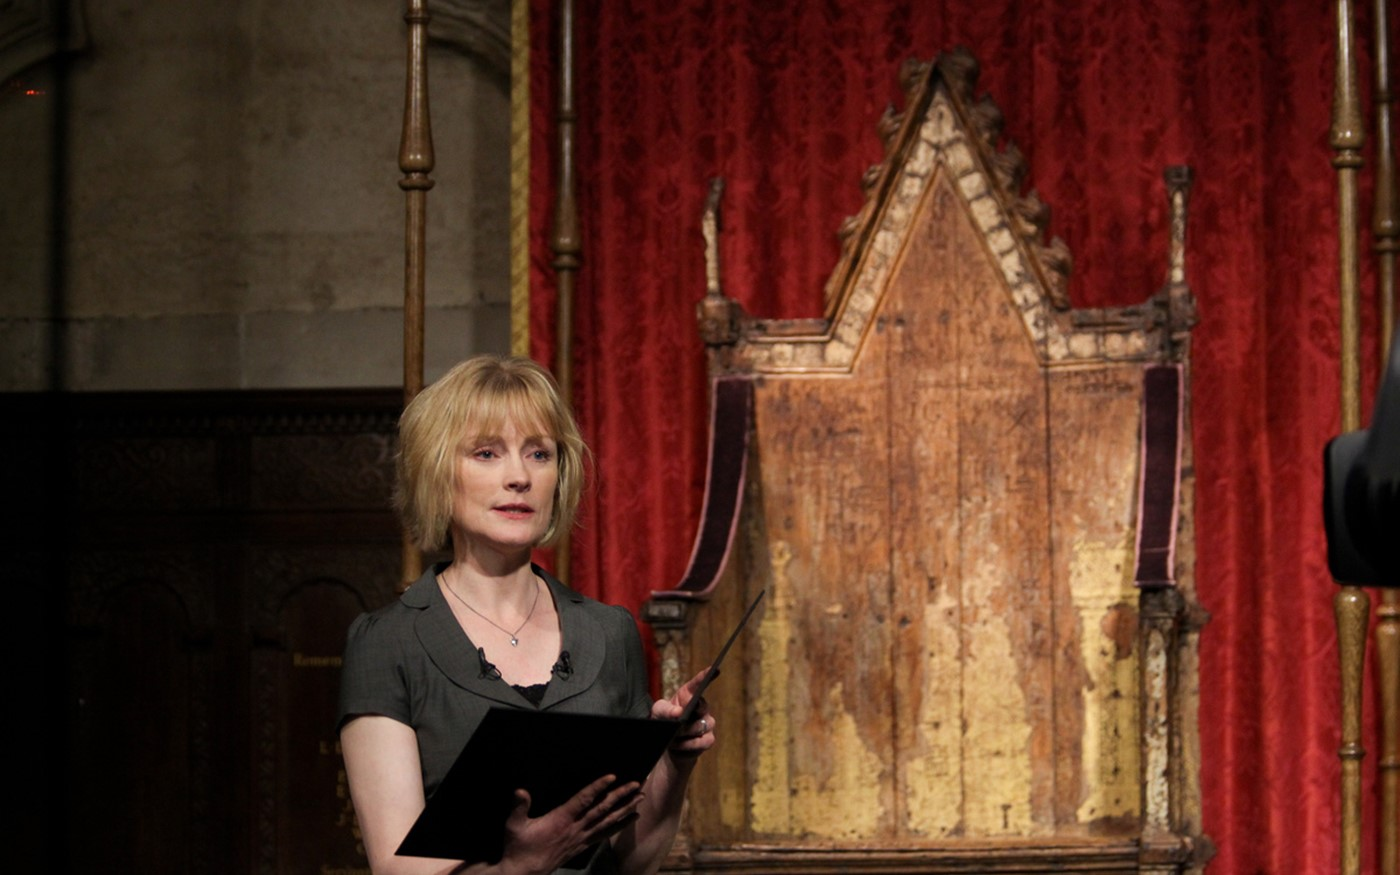 Claire Skinner read The Crown by the Poet Laureate Carol Ann Duffy from St George's Chapel beside the Coronation Chair